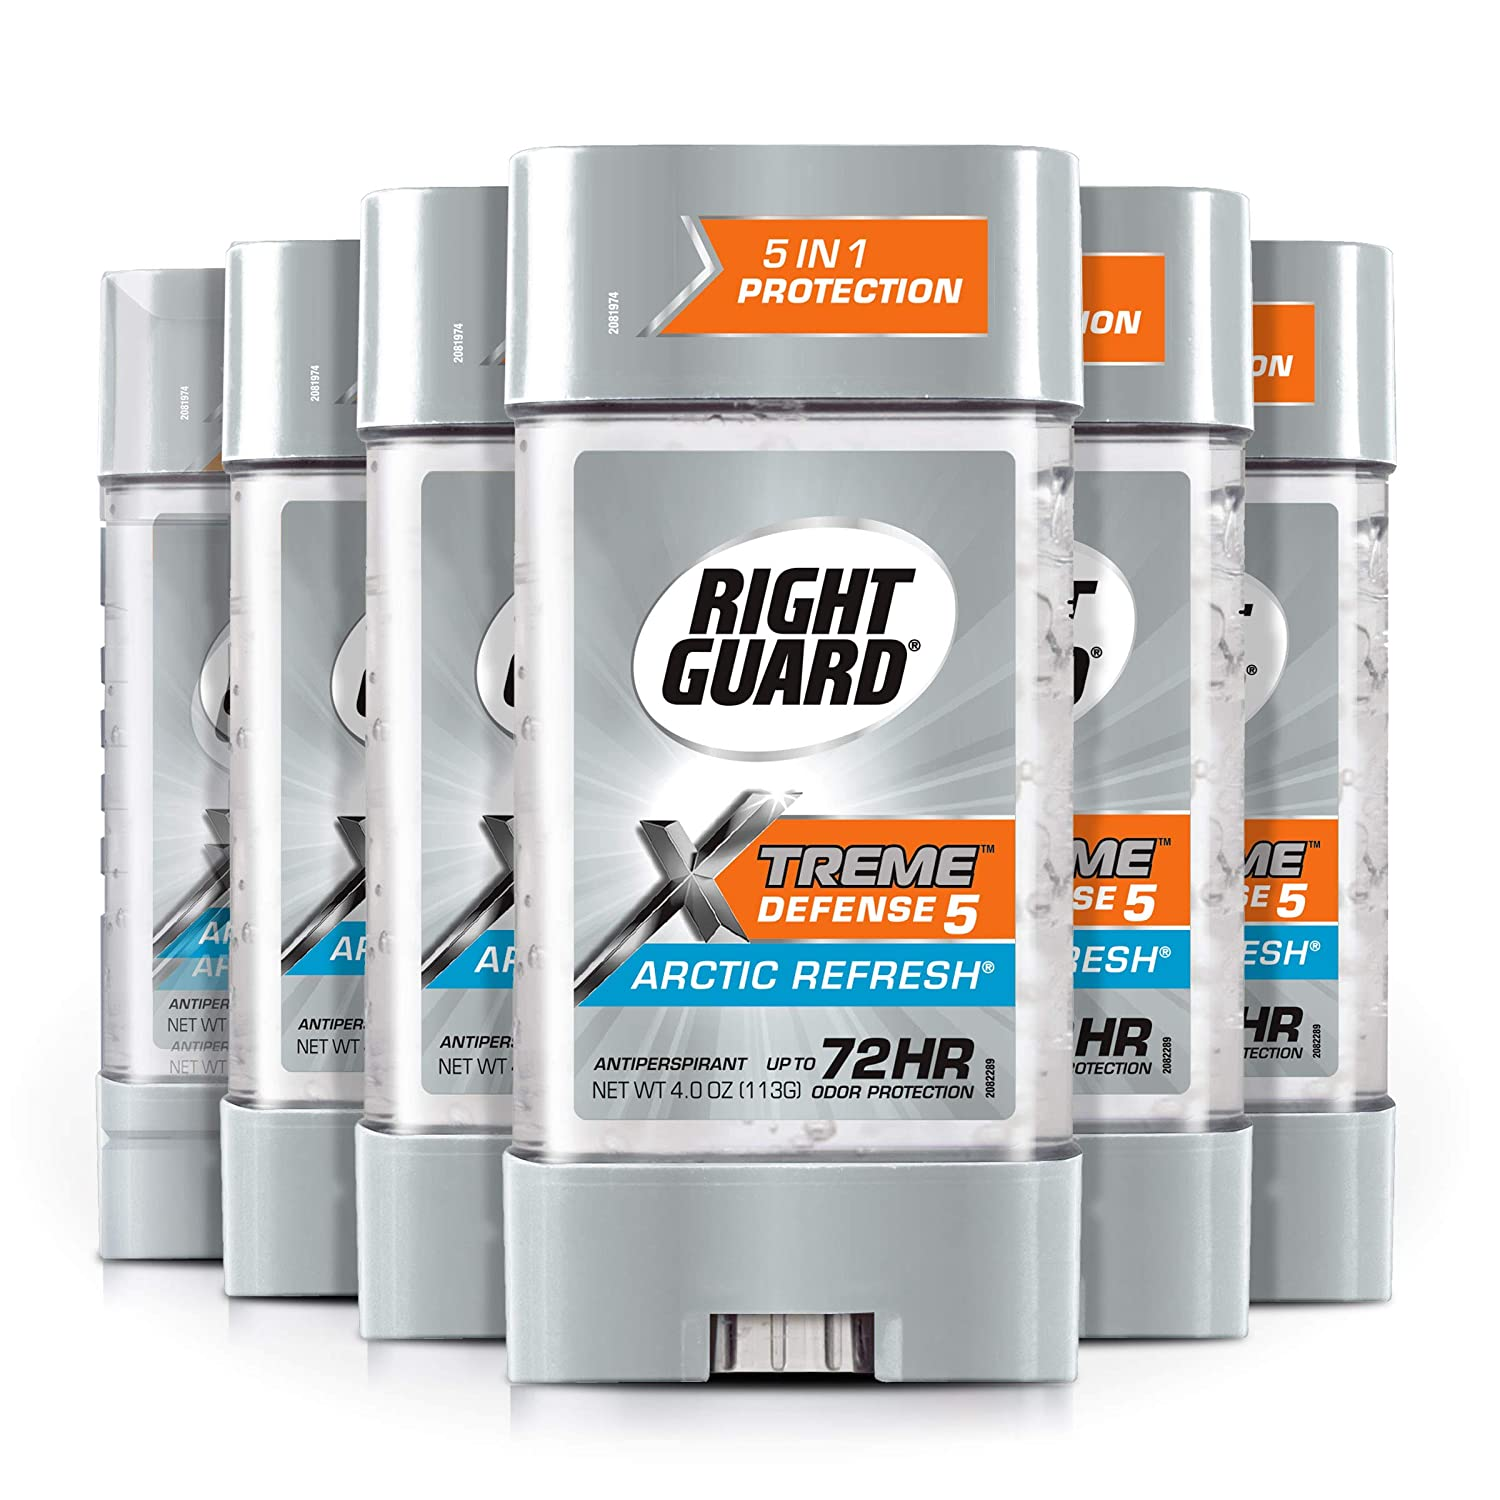 Right Guard Xtreme Defense Antiperspirant Deodorant Gel, Arctic Refresh, 4 Ounce (6 pack)